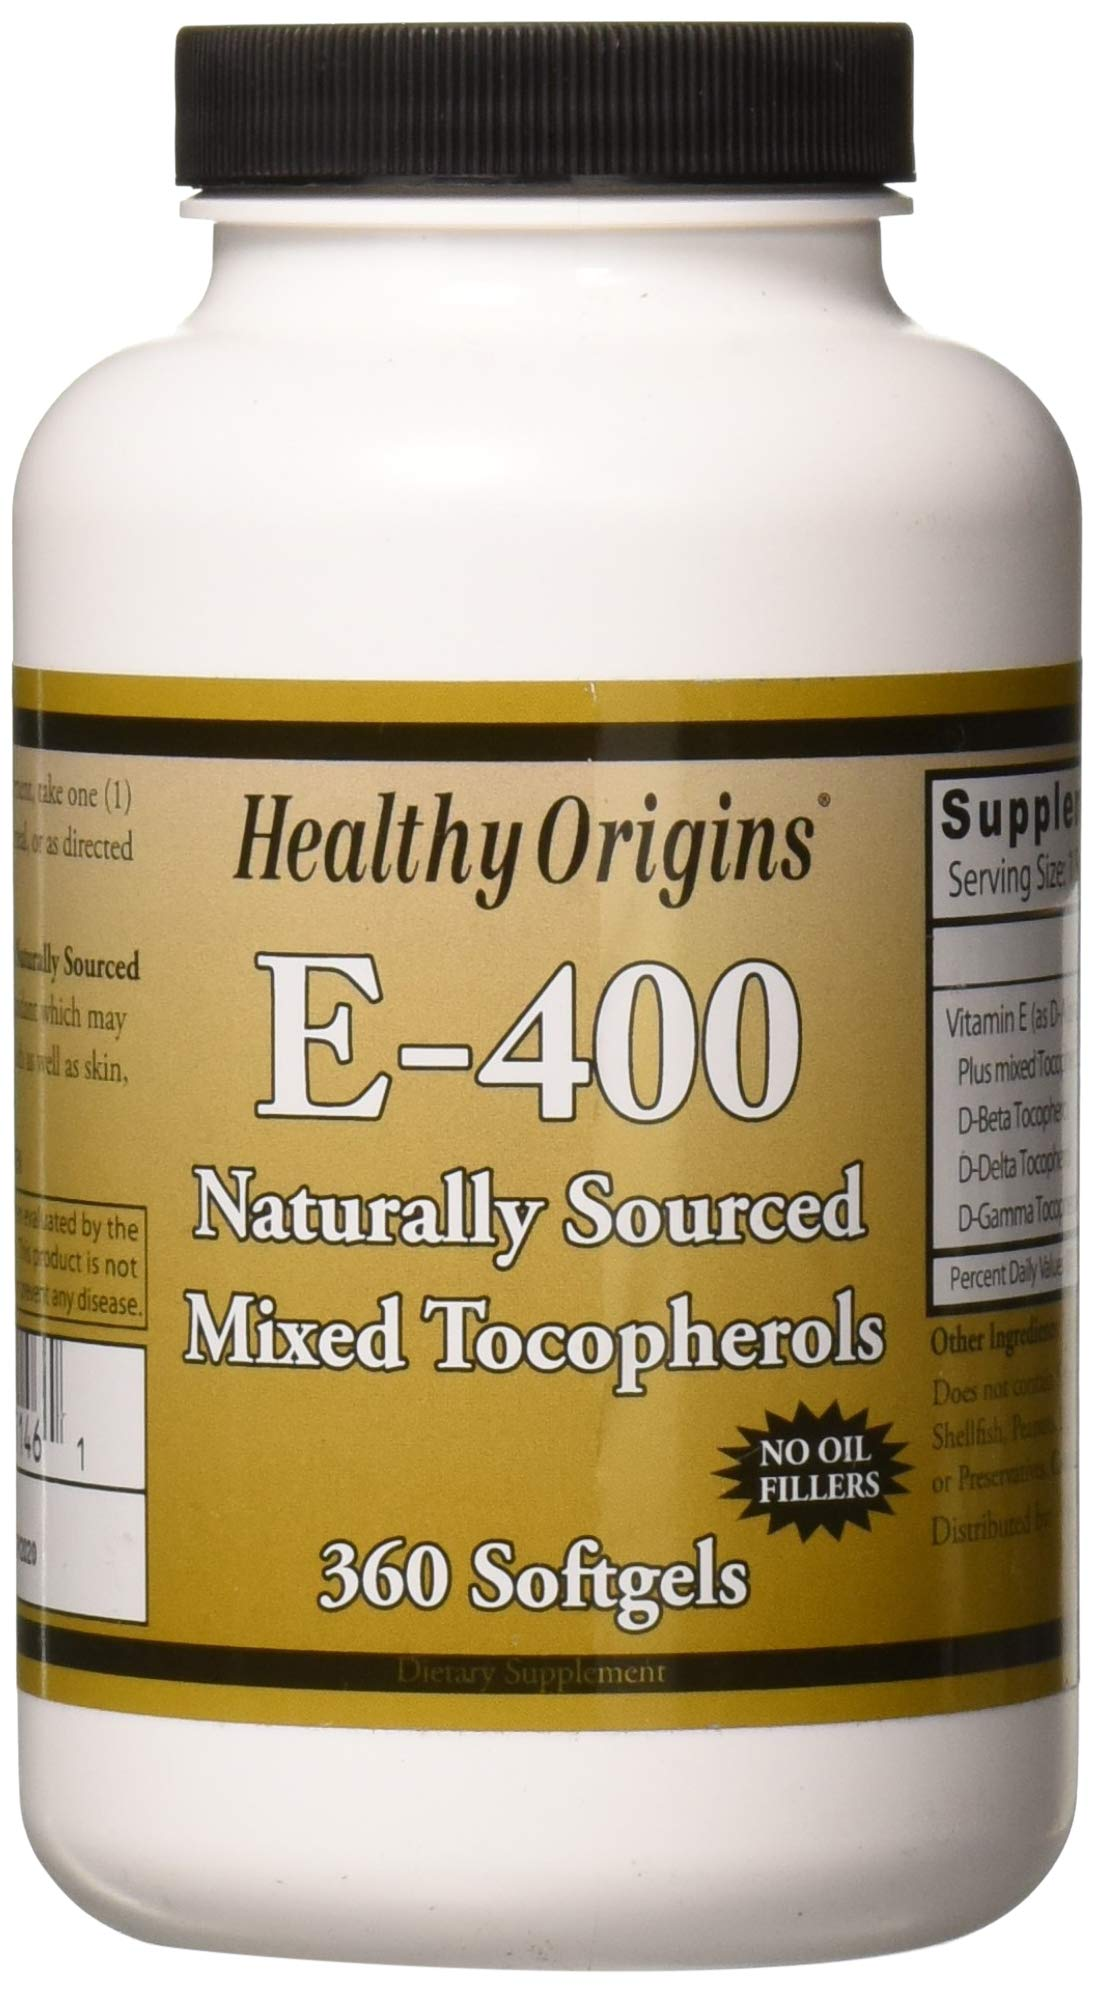 Healthy Origins Vitamin E - 400 LU Natural Mixed Toco Gels, 360 Count